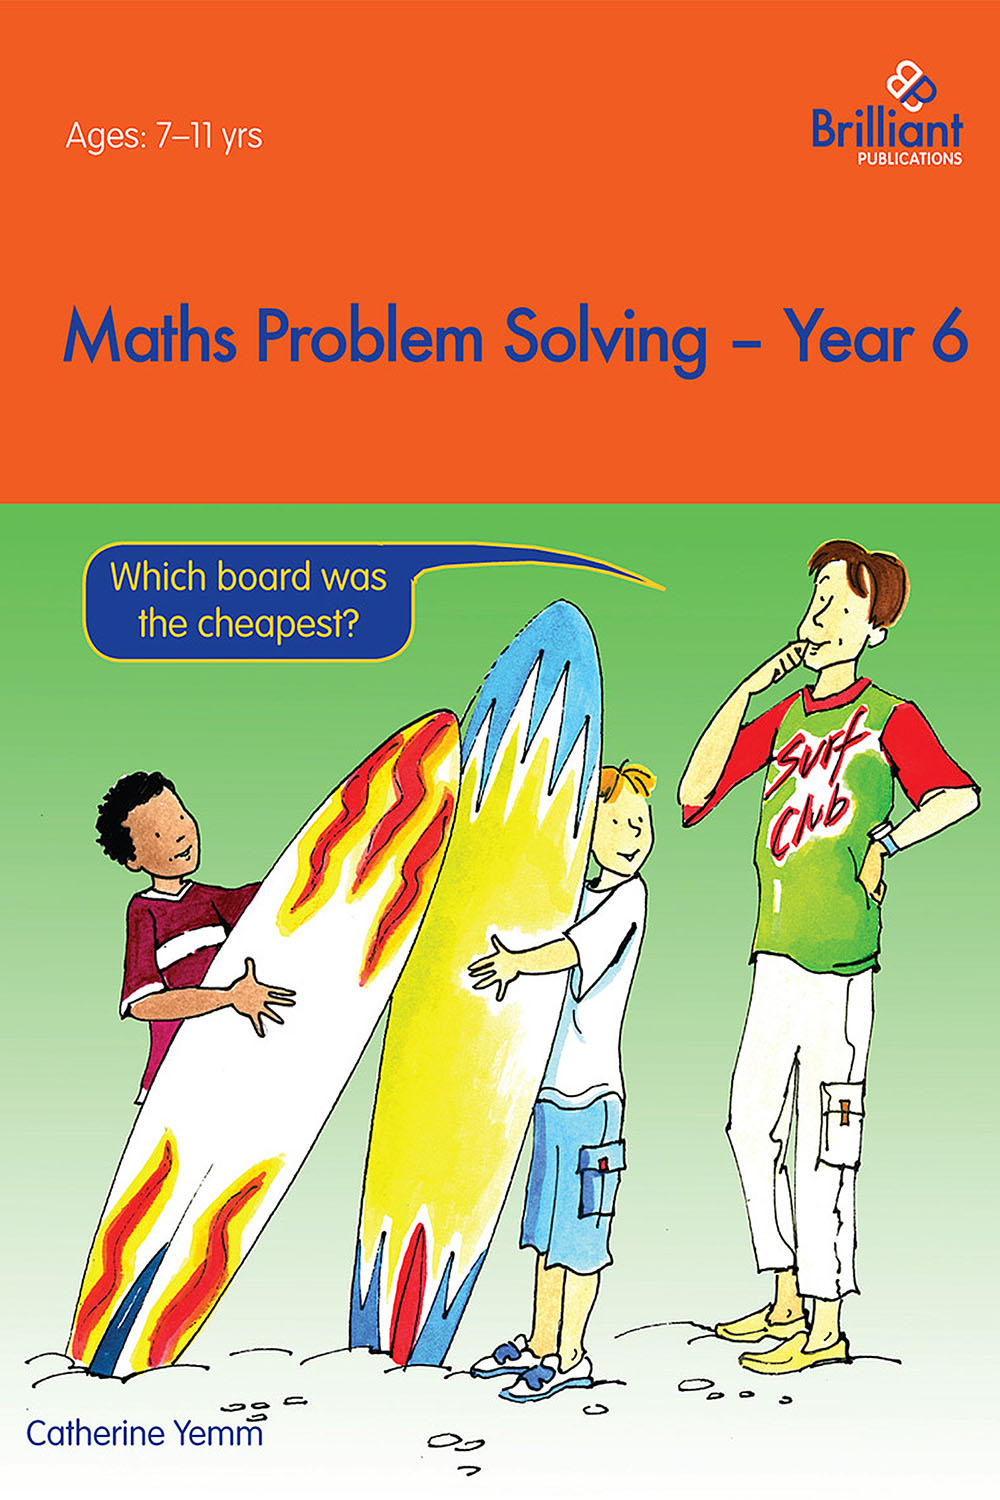 Maths Problem Solving Year 6